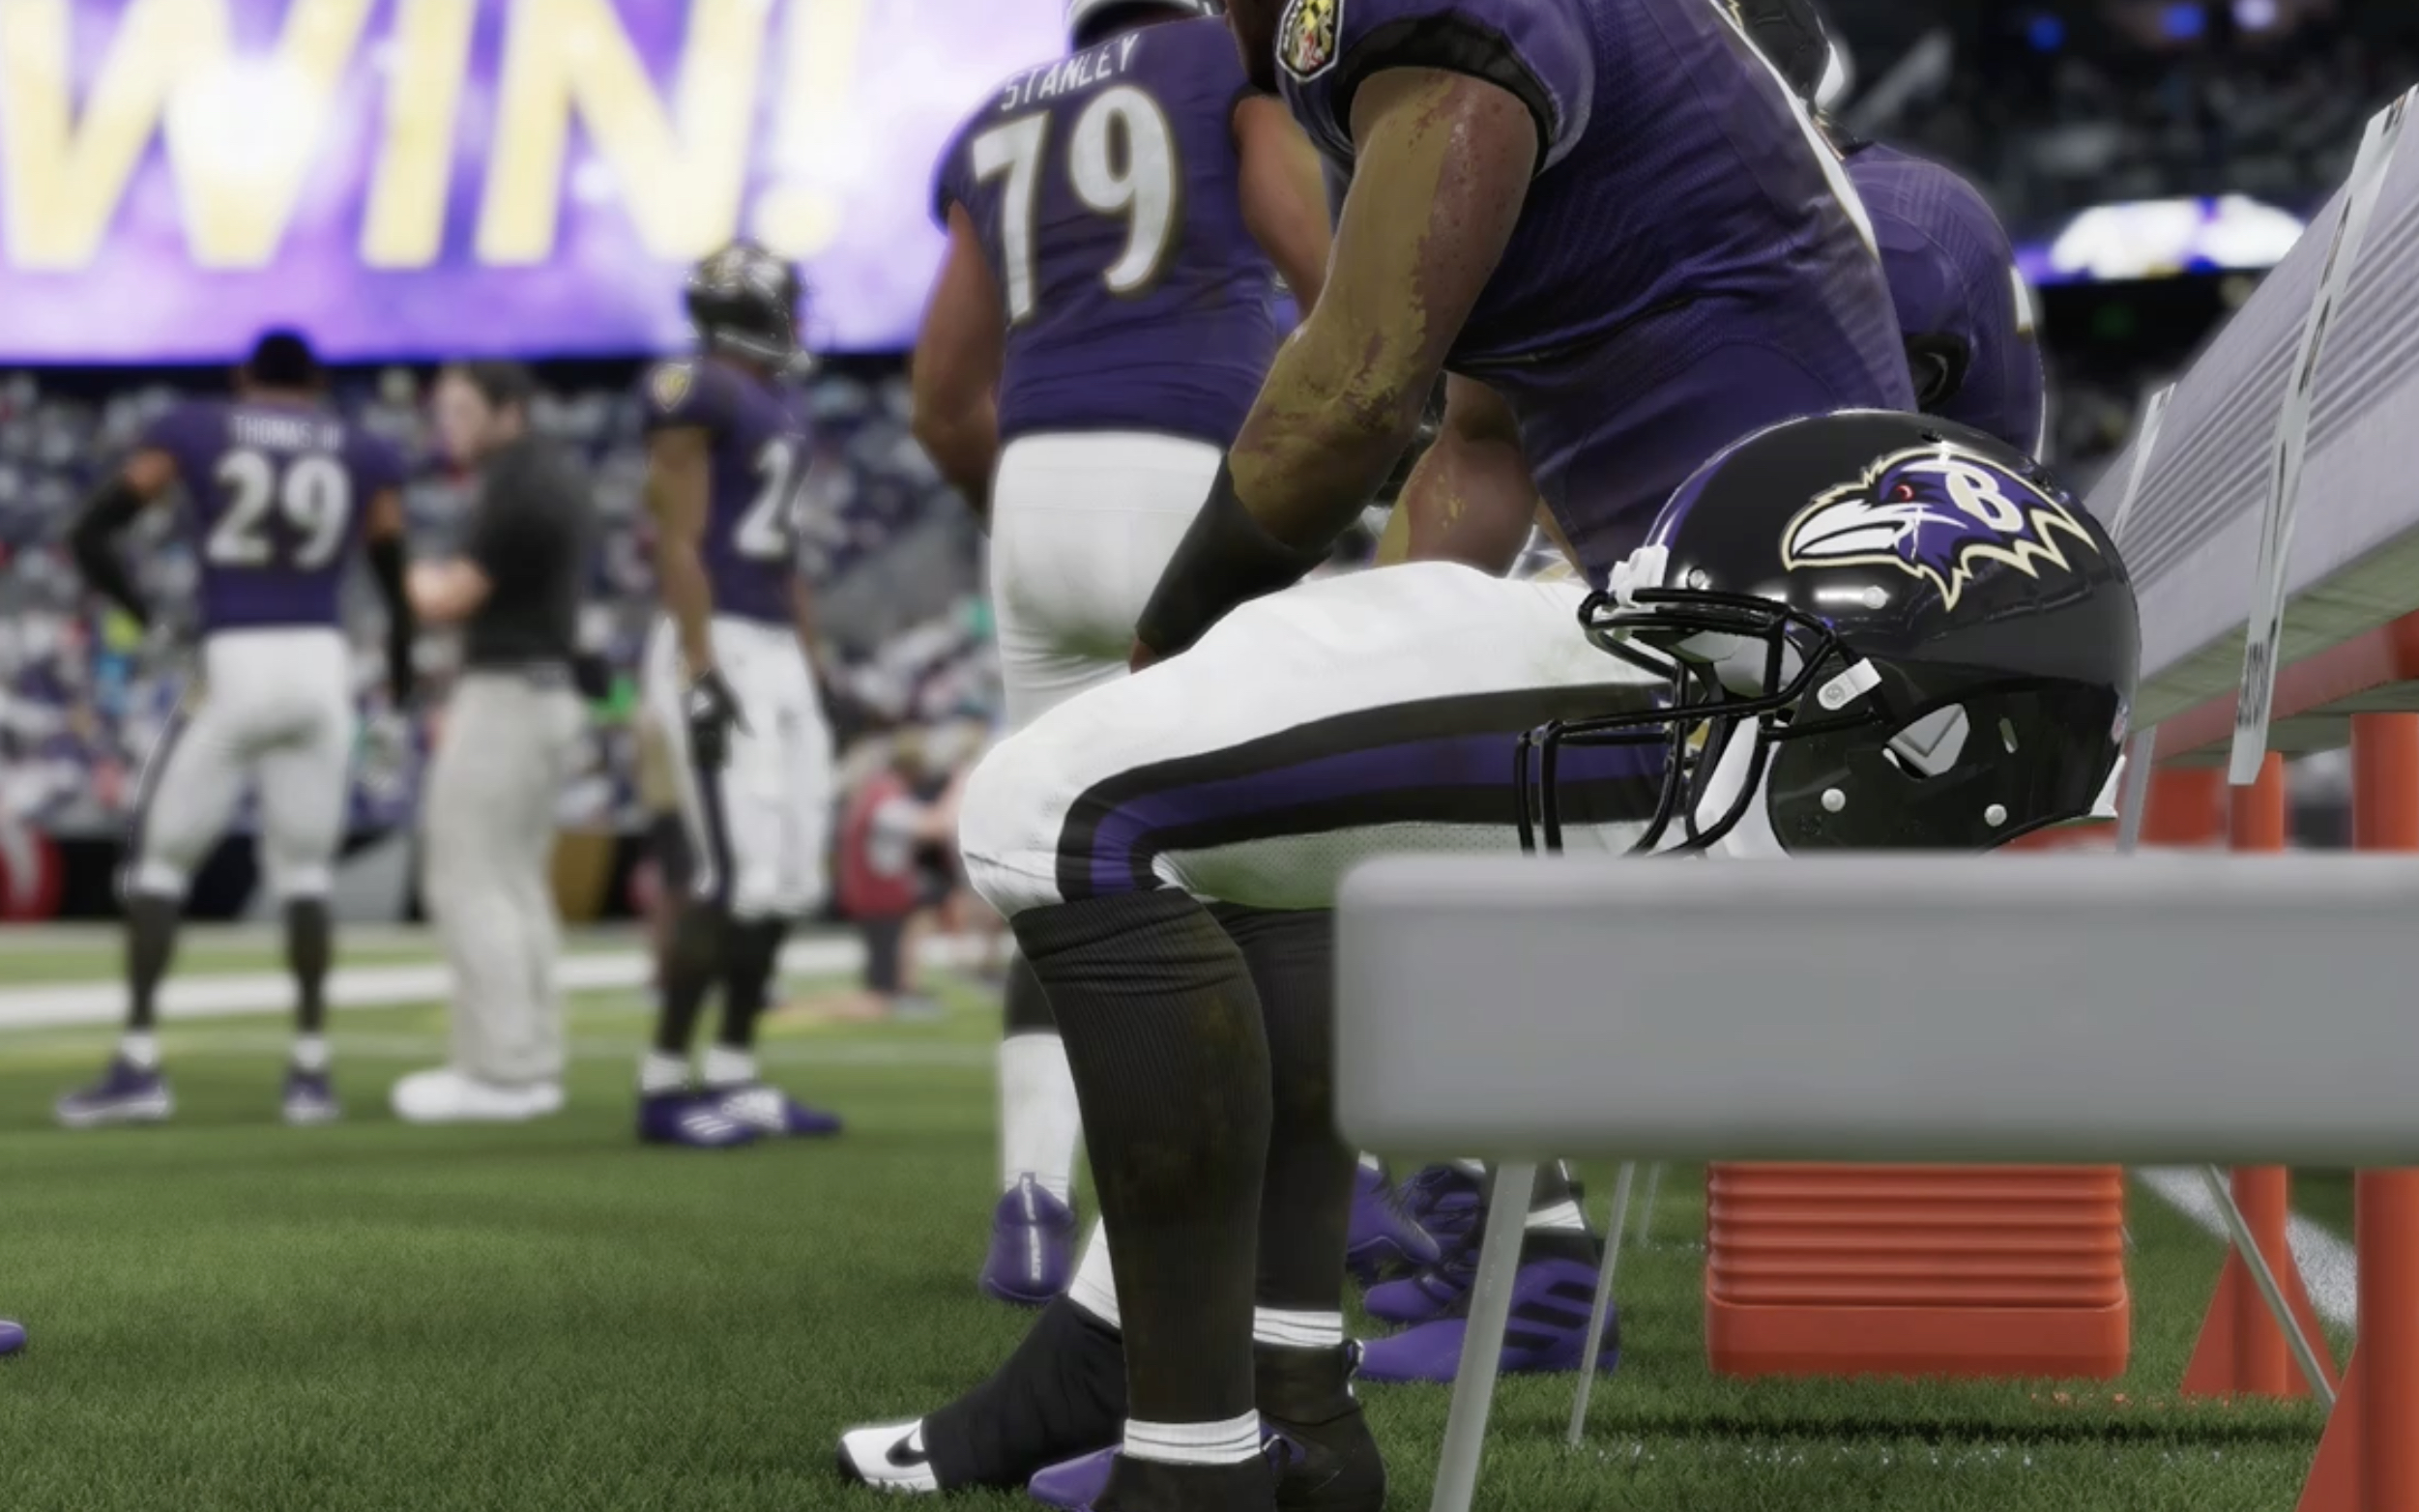 Ravens helmet on the bench with Ravens players in Madden 21